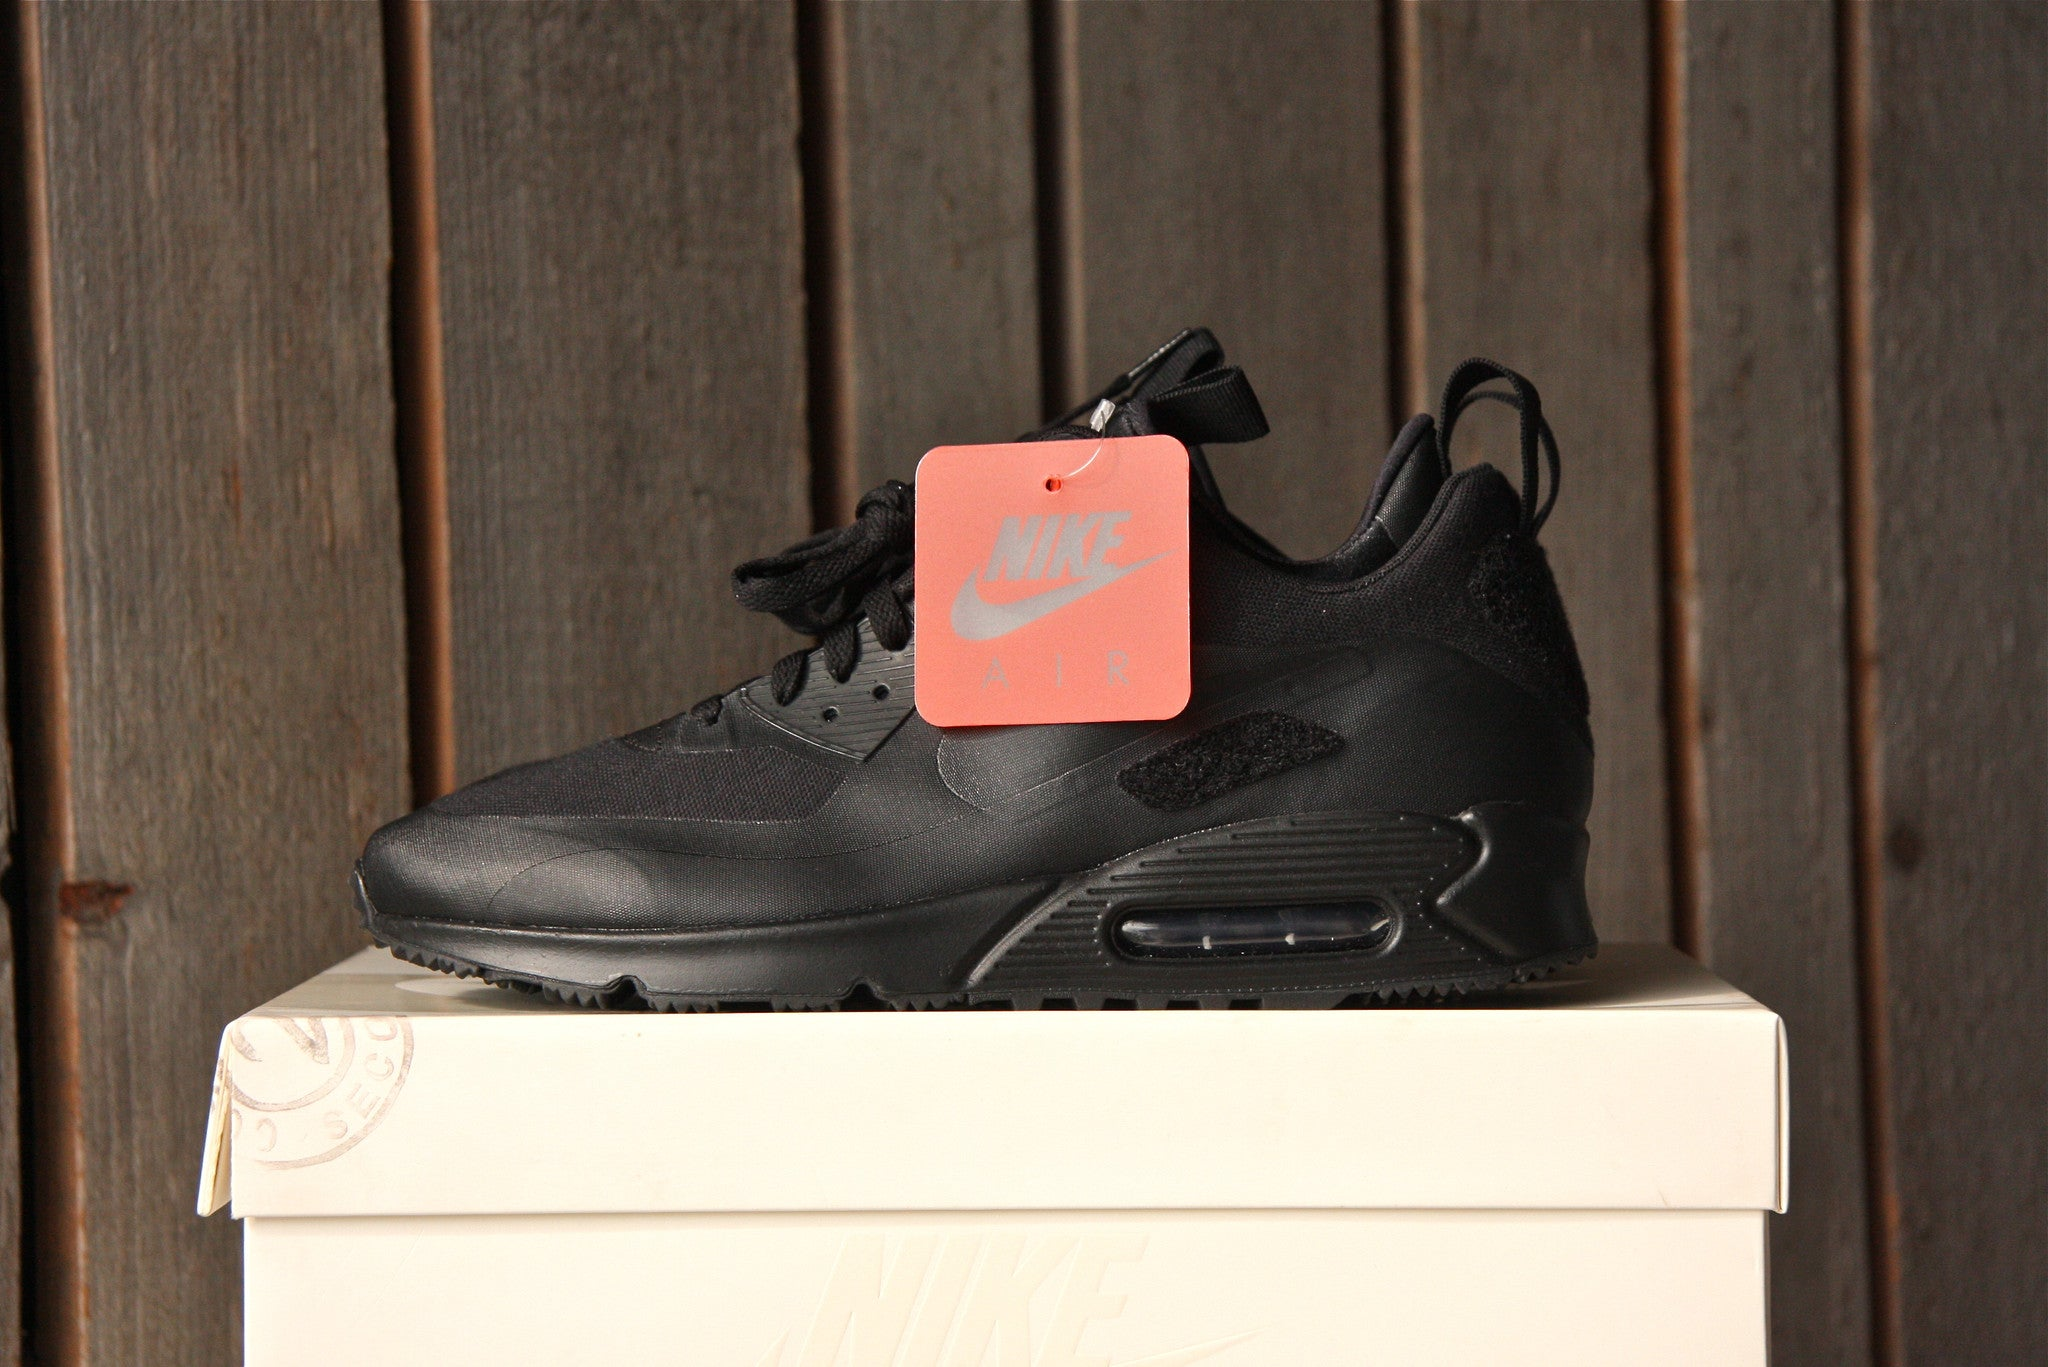 Nike Air Max 90 V SP (Patch)